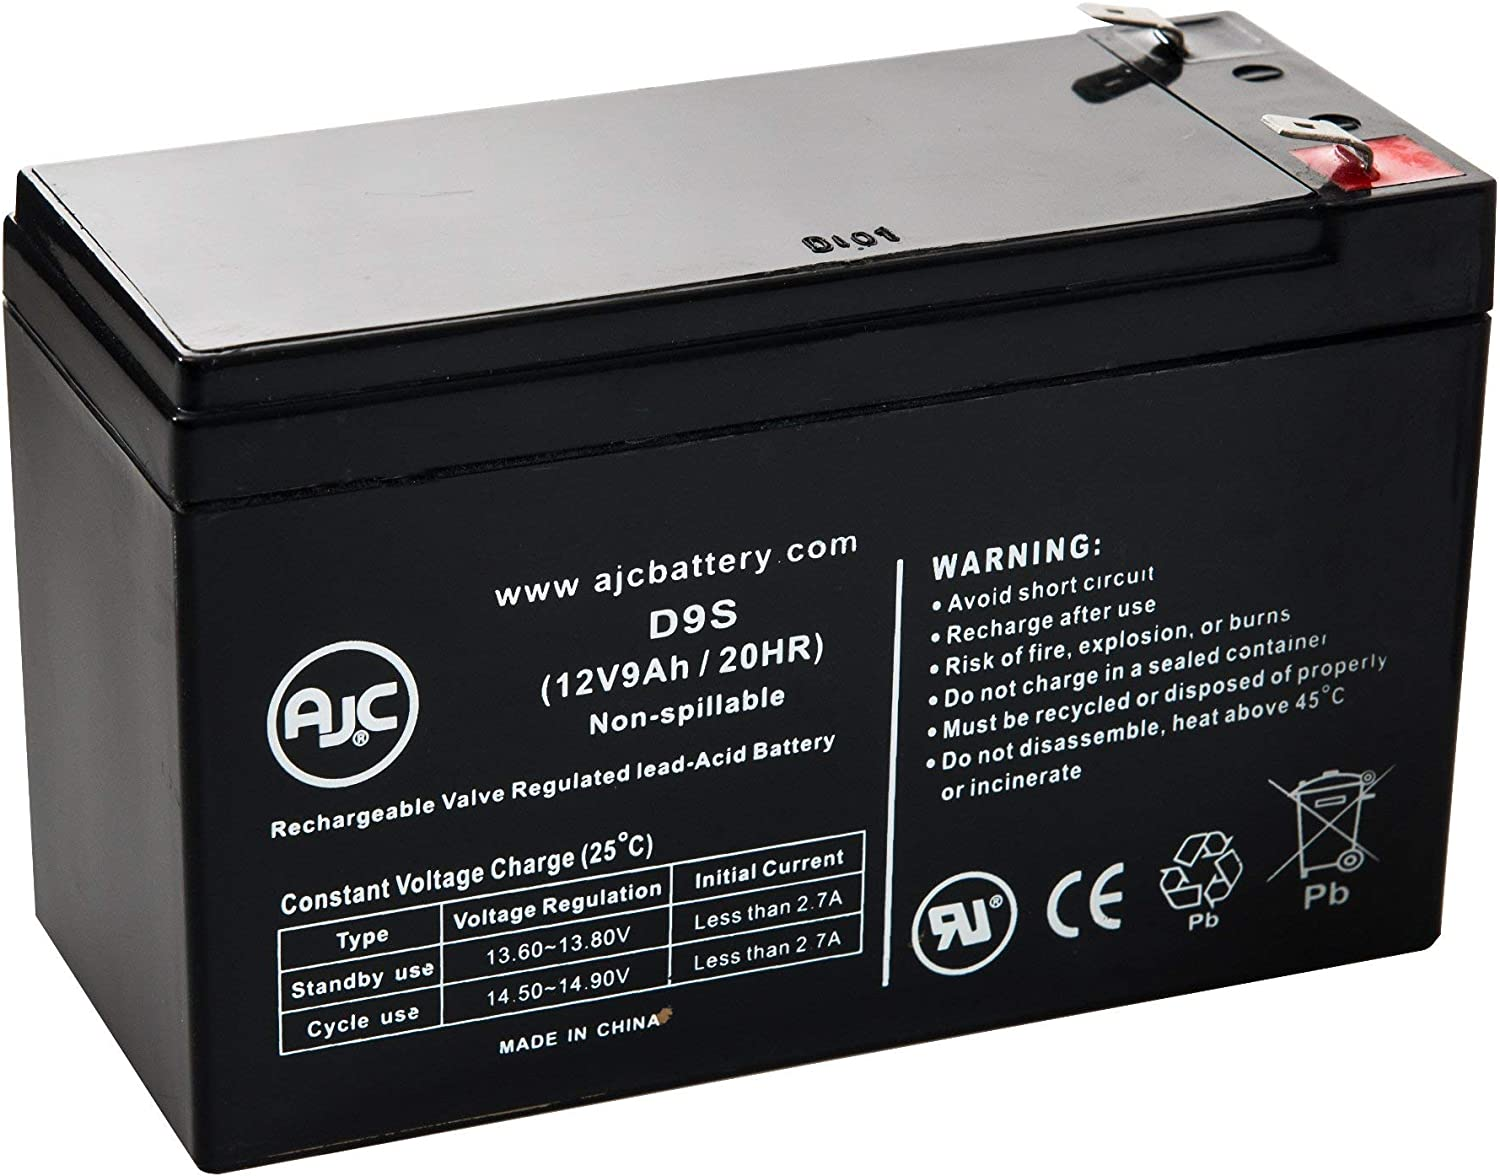 This is an AJC Brand Replacement Eaton PowerWare 3105-700 VA 12V 9Ah UPS Battery